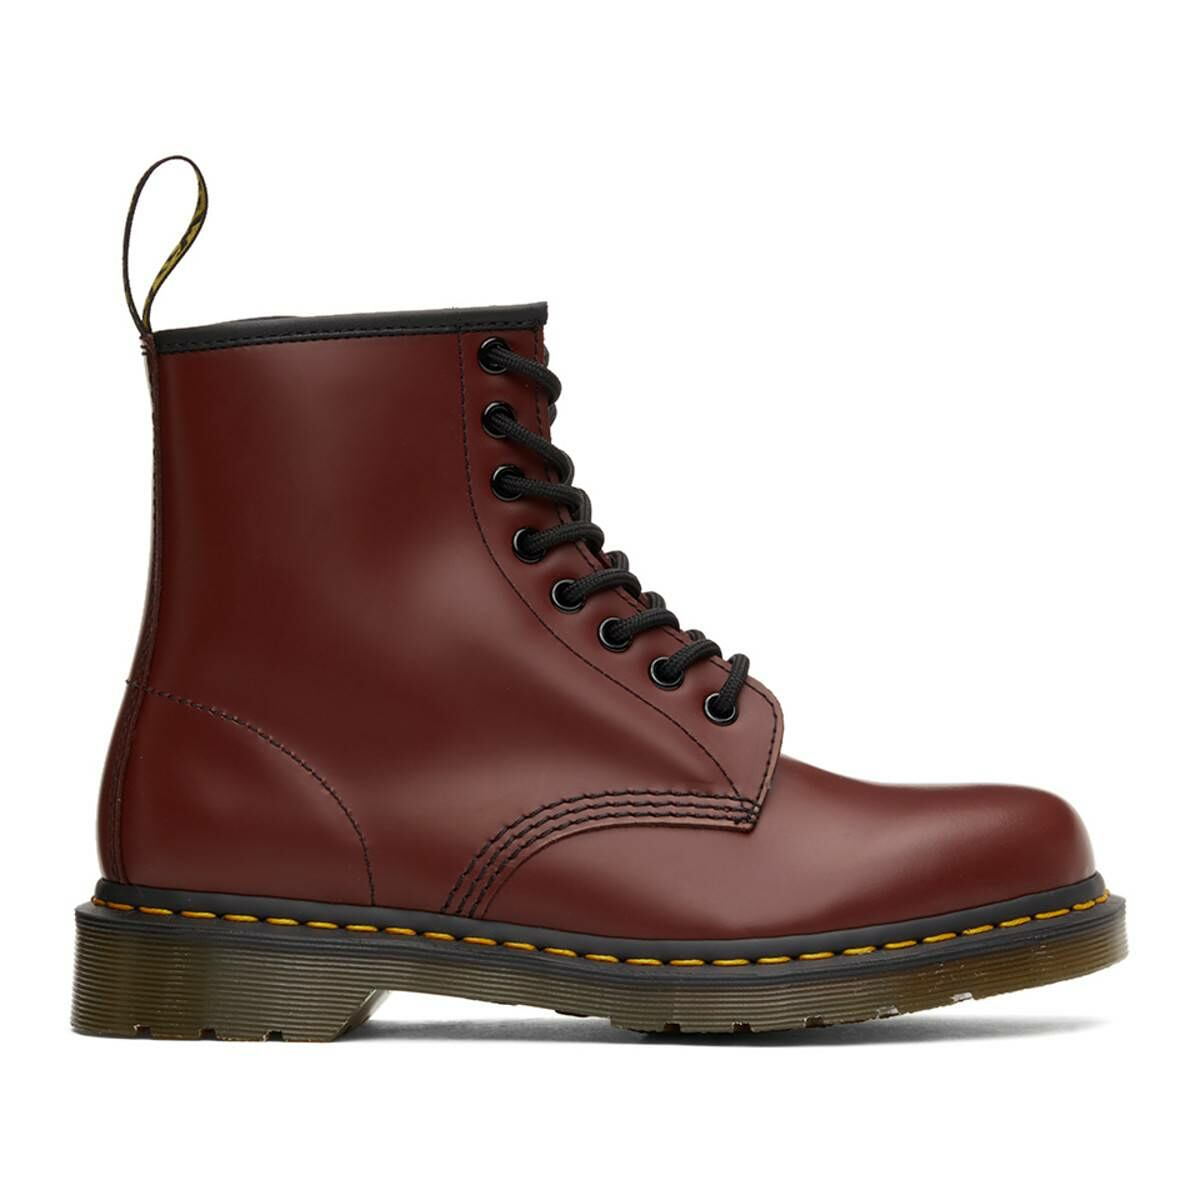 Dr. Martens Red 1460 Smooth Lace-Up Boots Ssense USA MEN Men SHOES Mens BOOTS